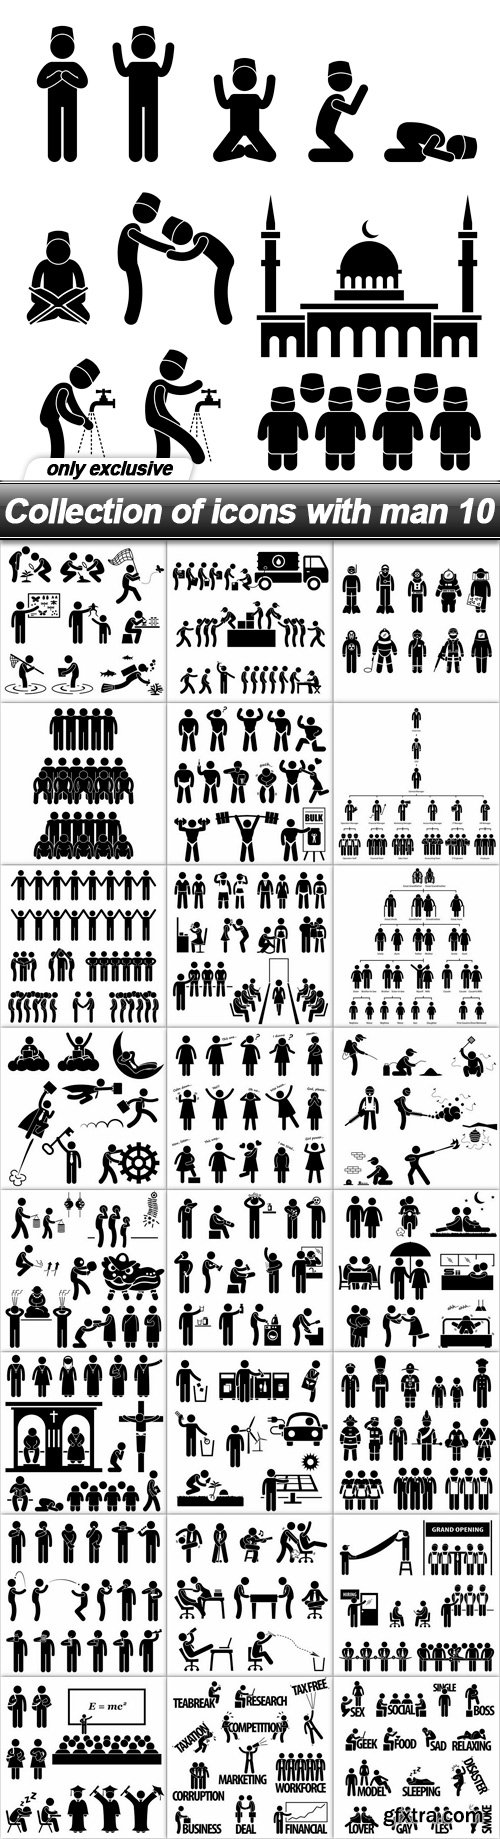 Collection of icons with man 10 - 25 EPS